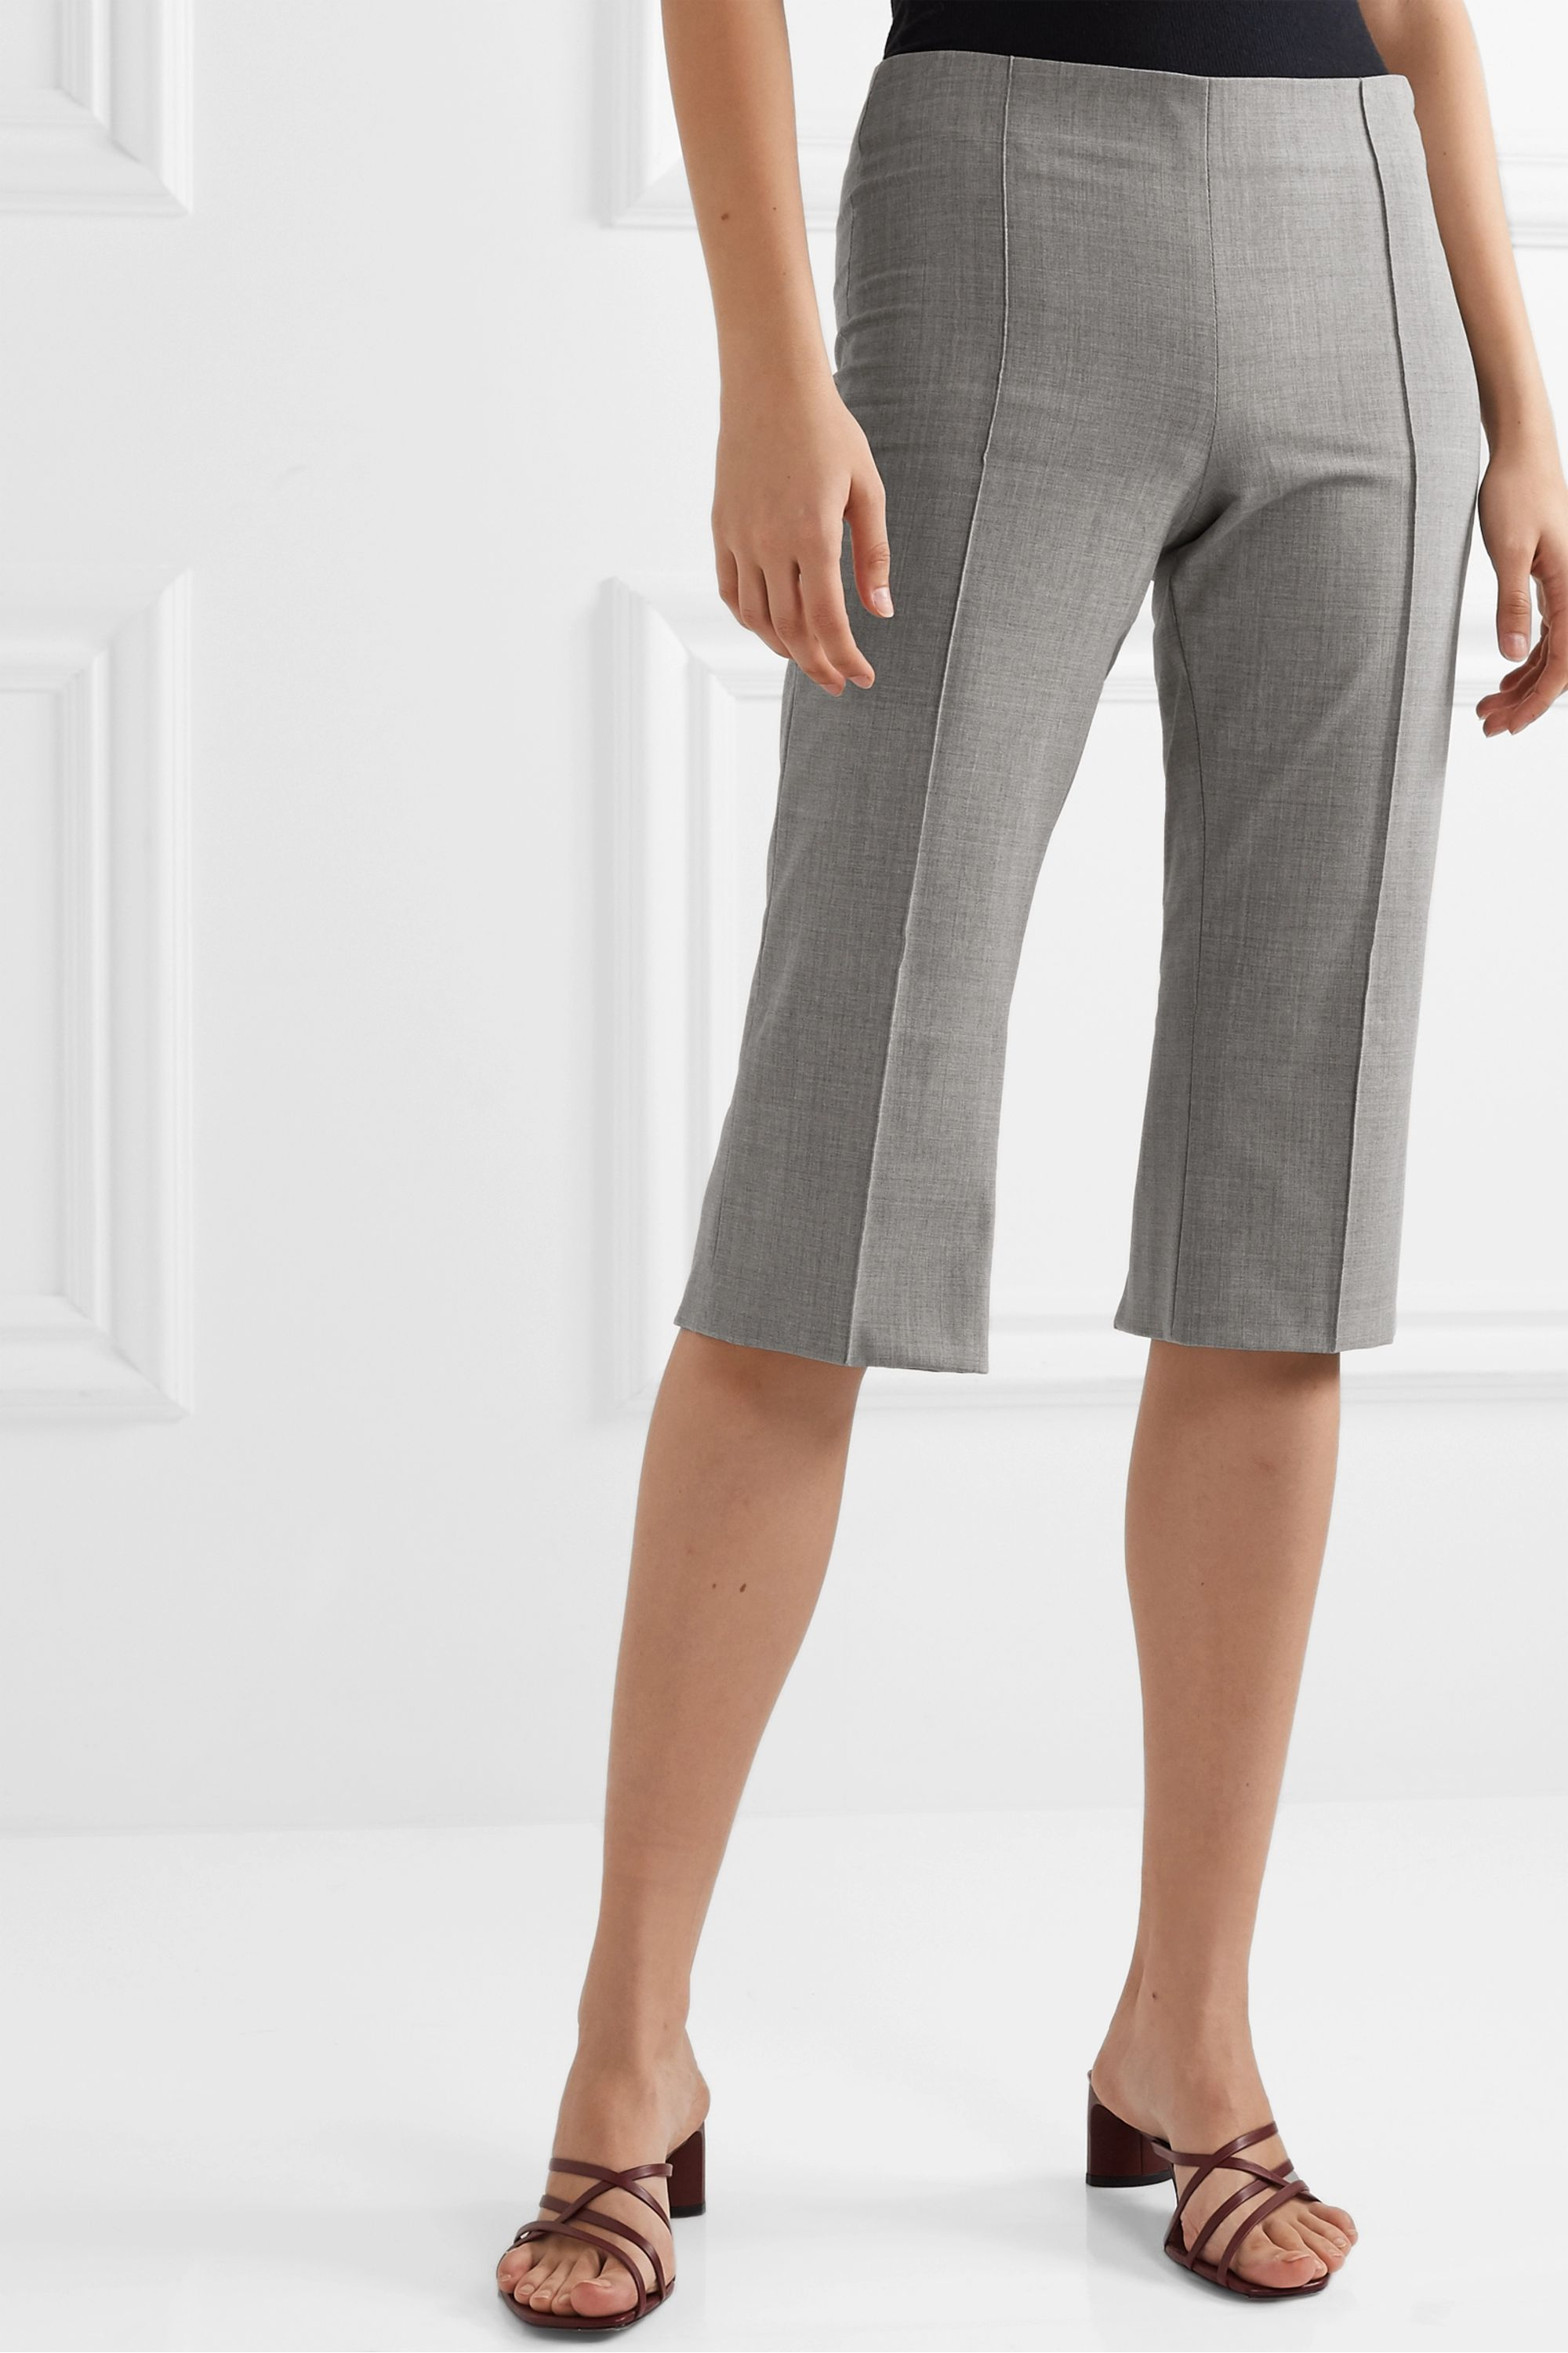 Maggie Marilyn + NET SUSTAIN One Step Ahead cropped woven straight-leg pants